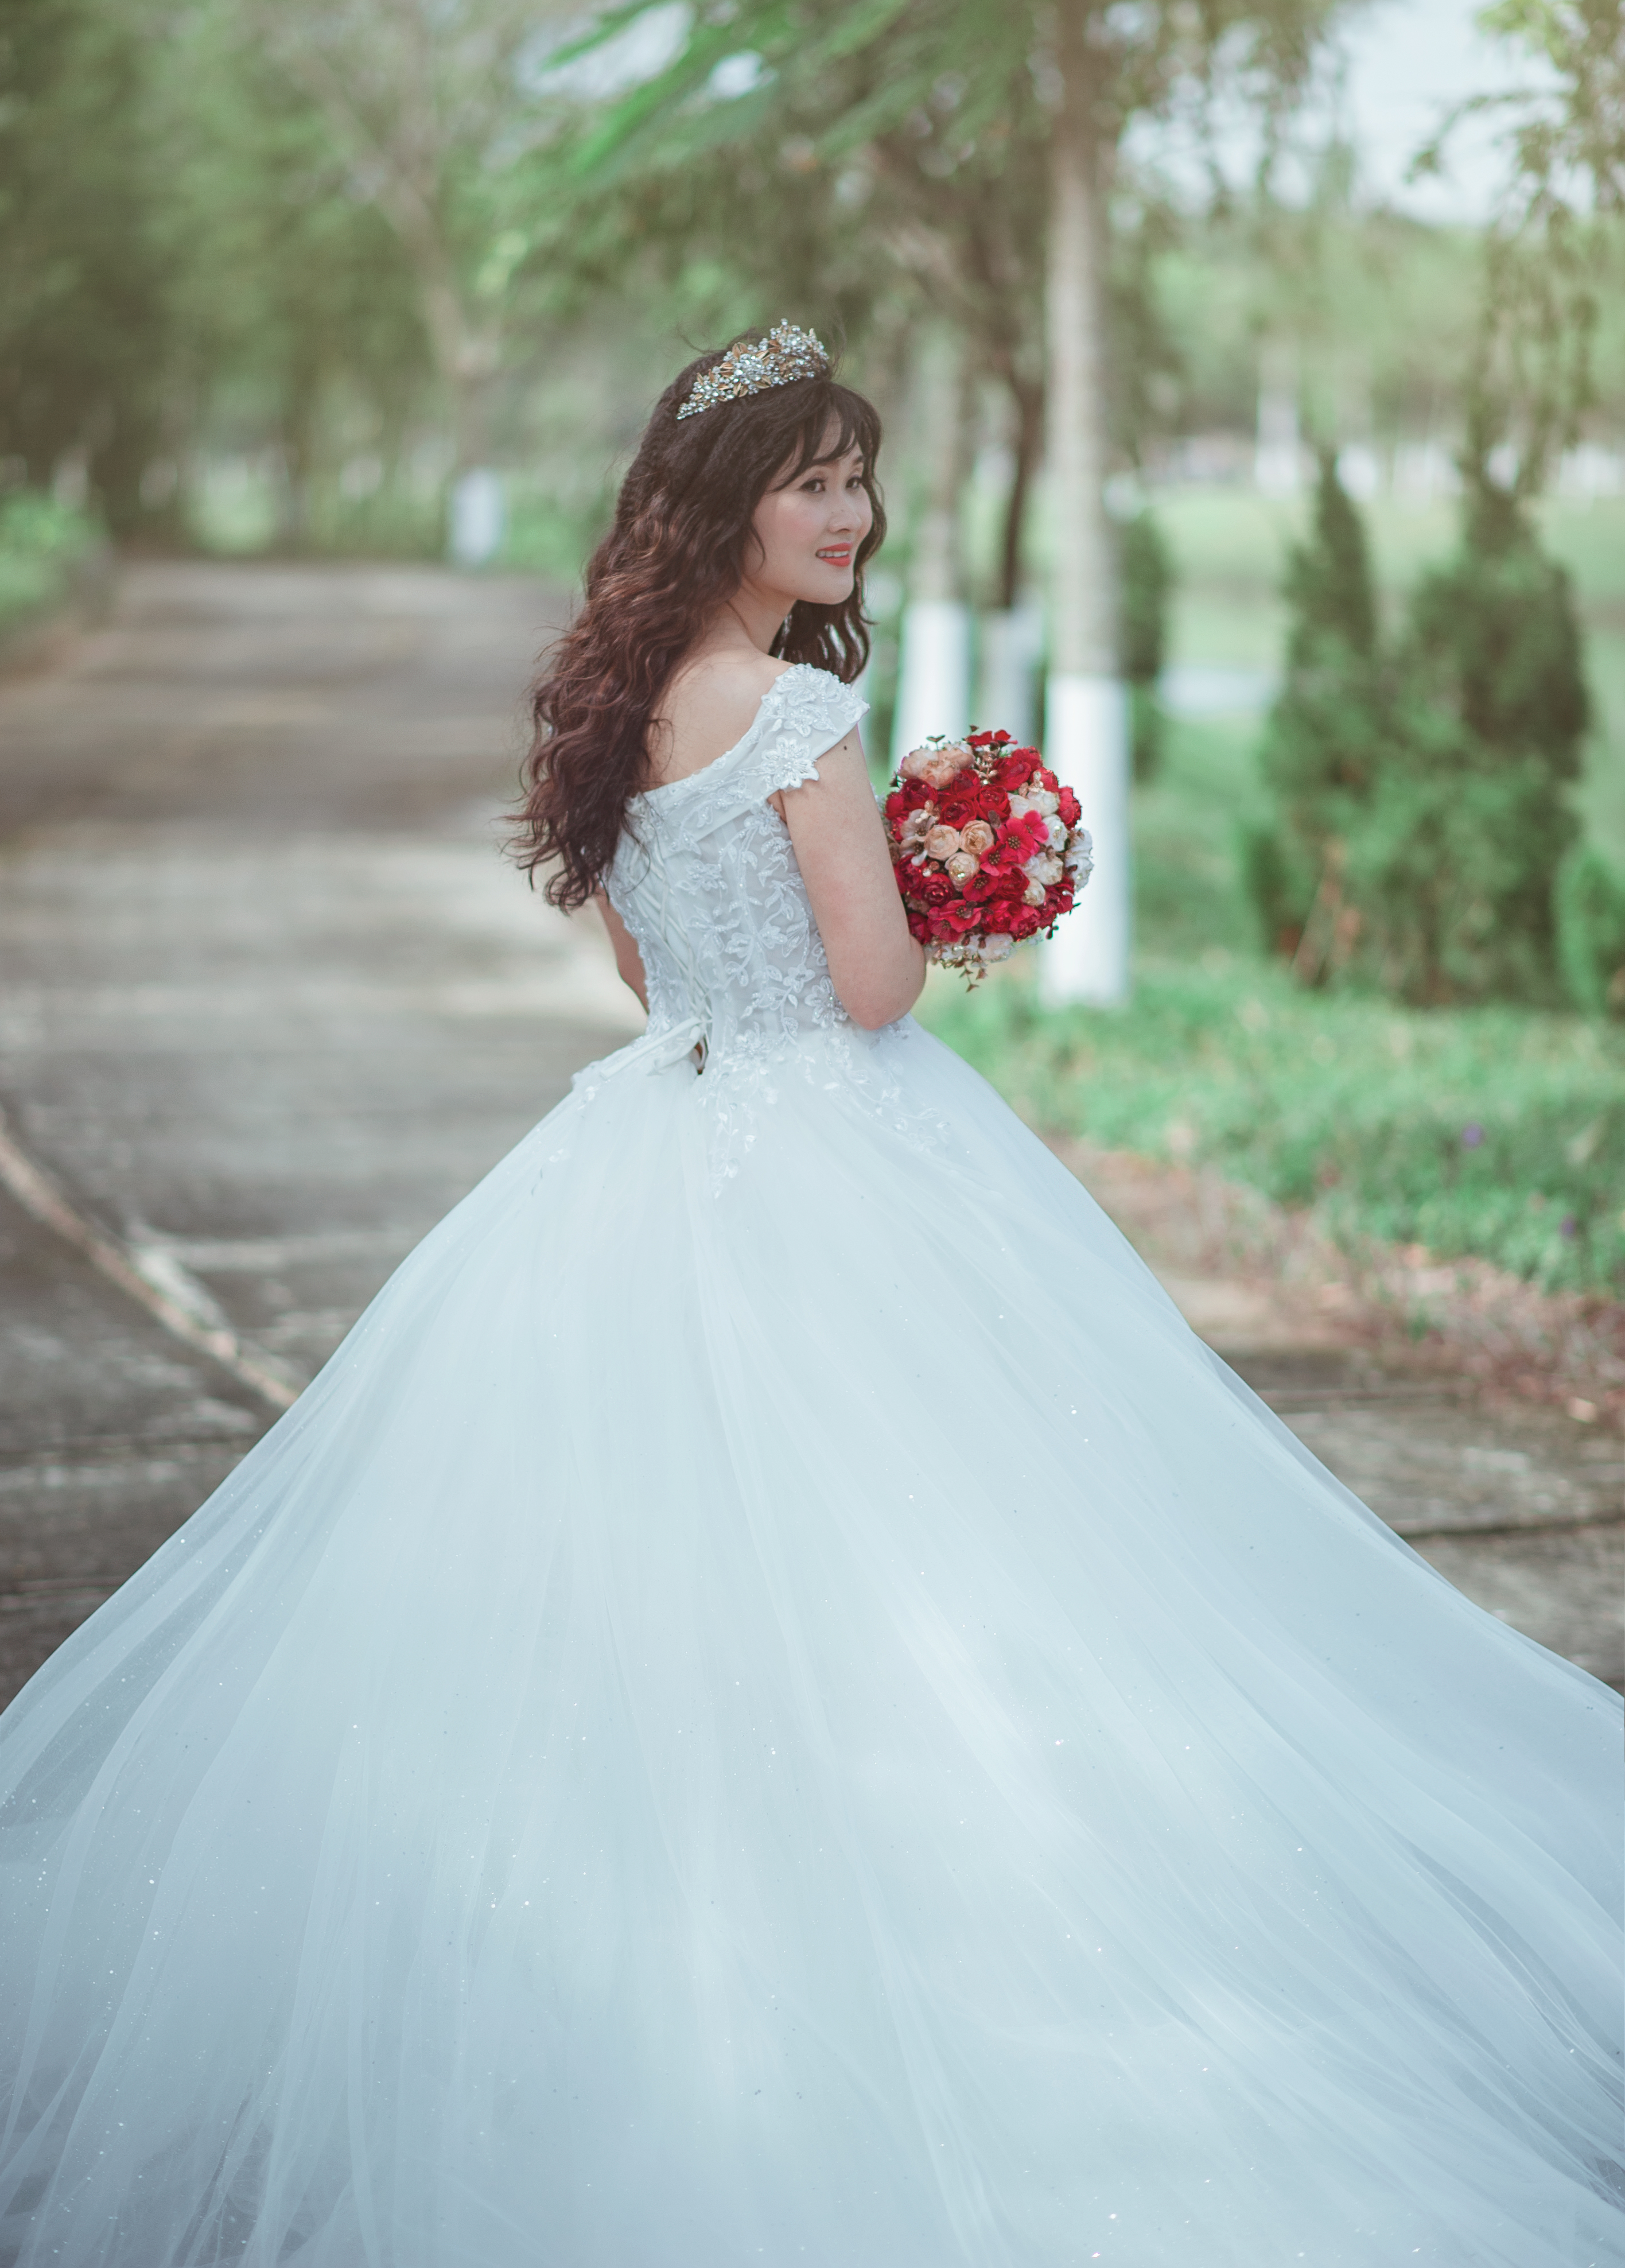 Bridal Girl Wallpaper Woman In White Strapless Sweetheart Wedding Dress With